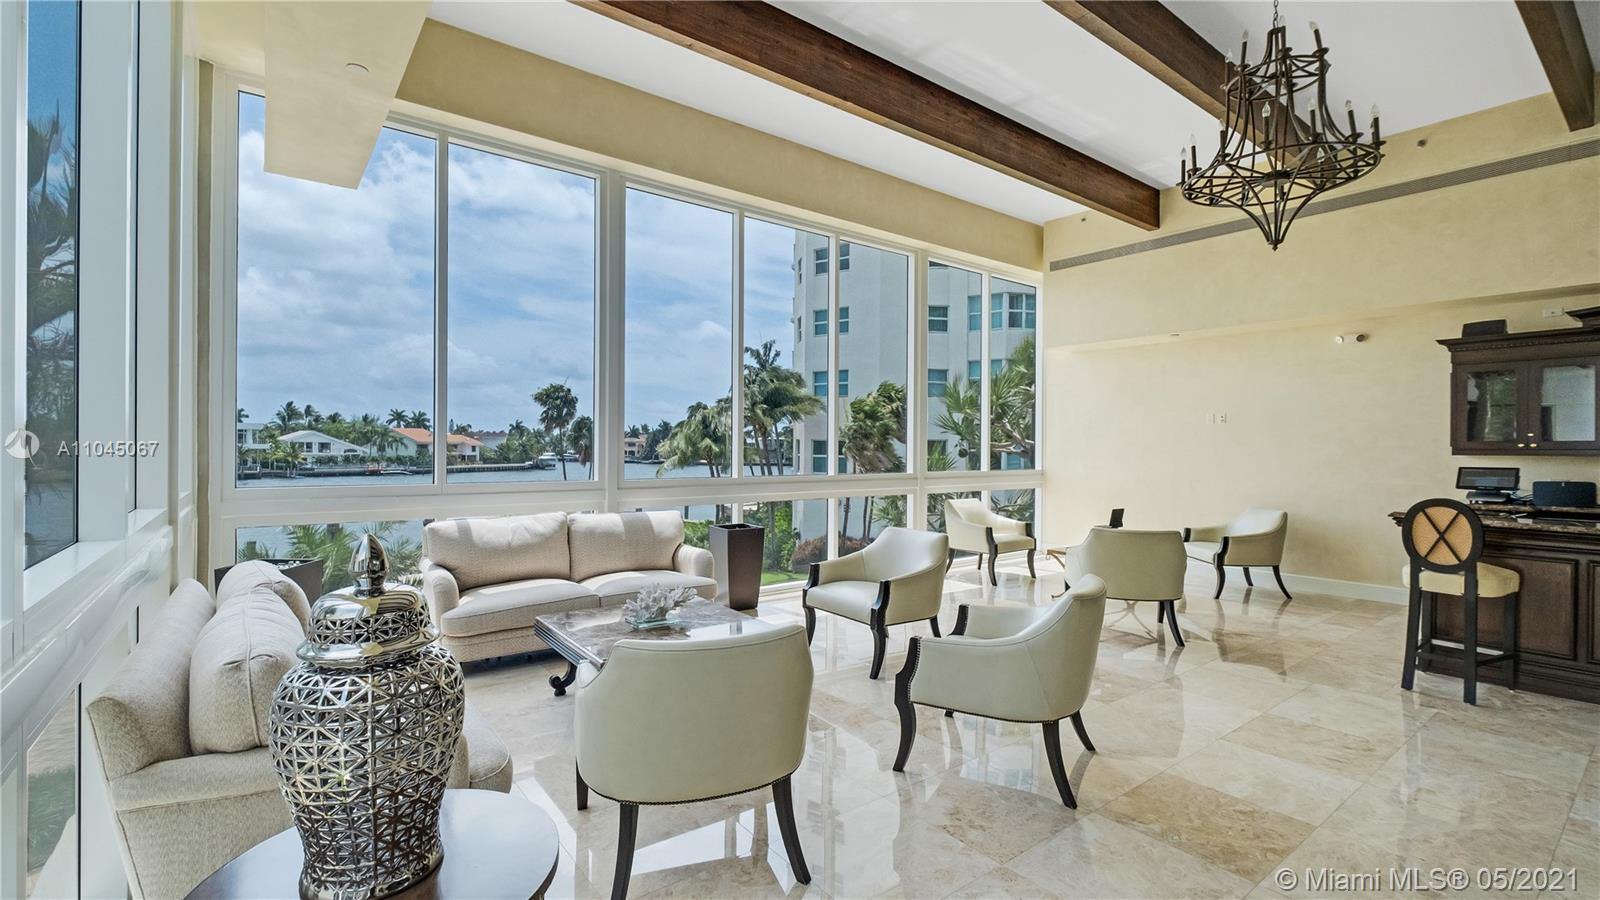 Photo of 20281 Country Club Dr #314, Aventura, Florida, 33180 - Clubhouse